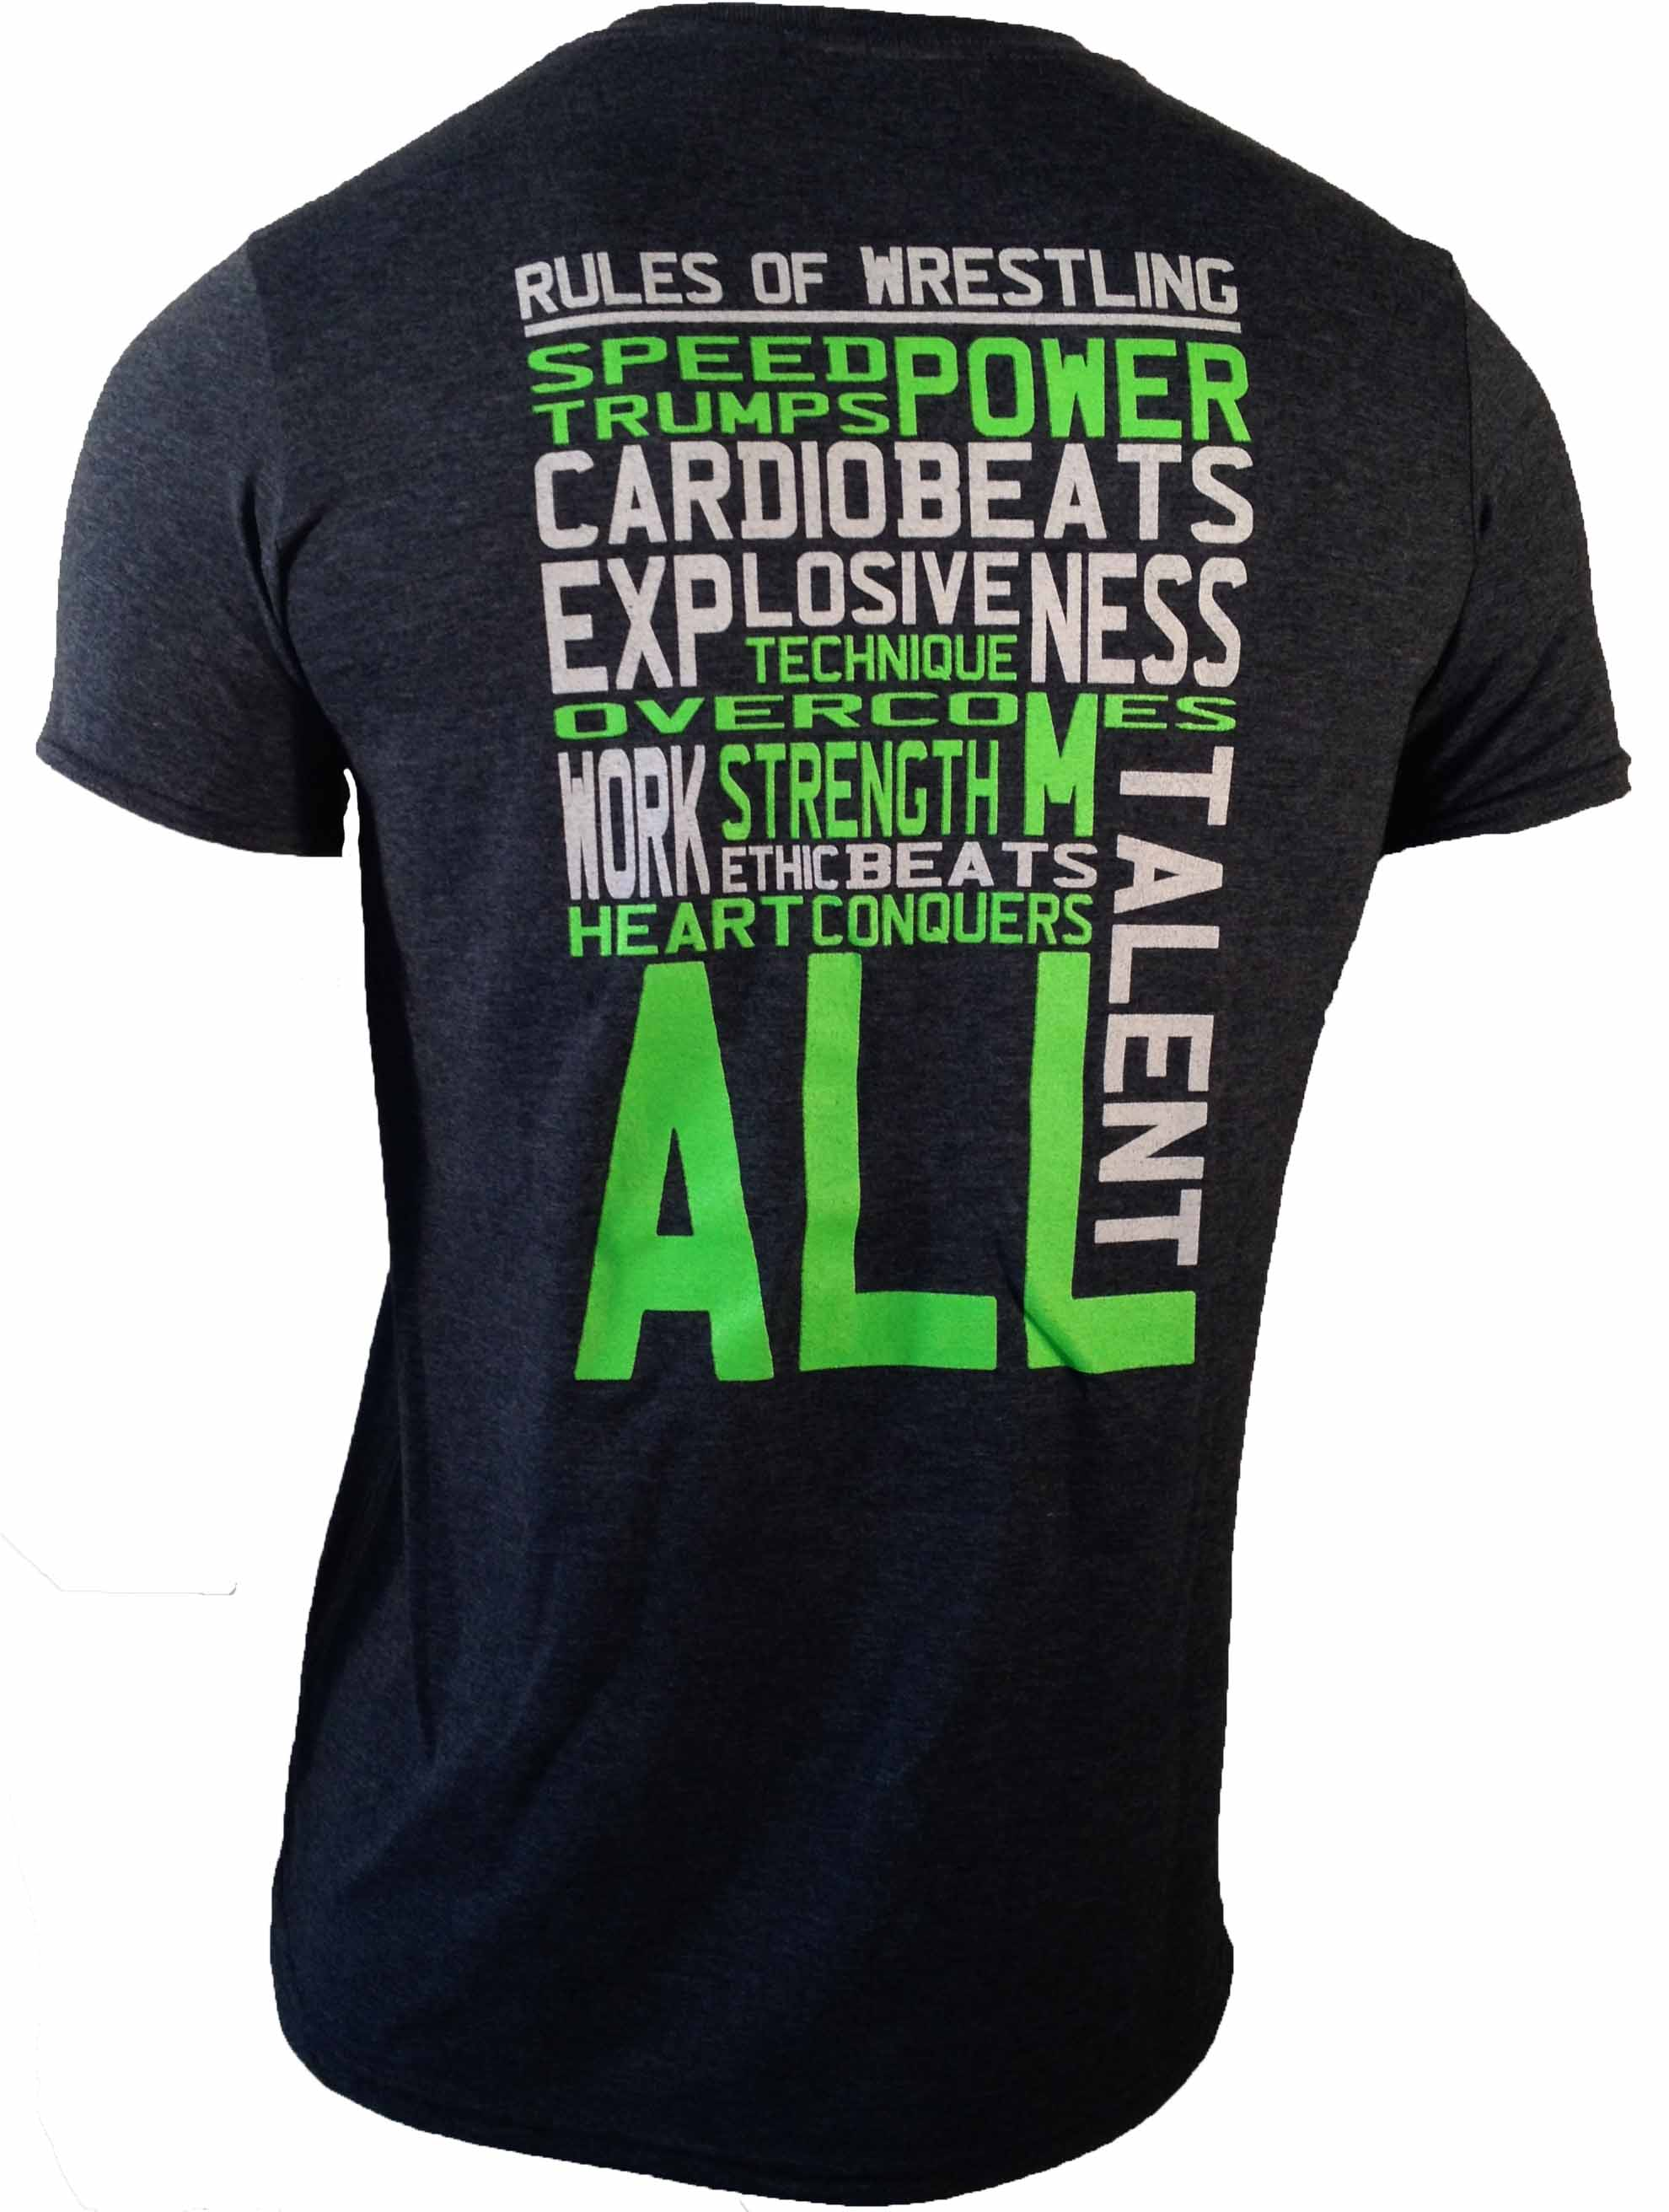 Wrestling Quotes And Sayings For T Shirts Quotesgram